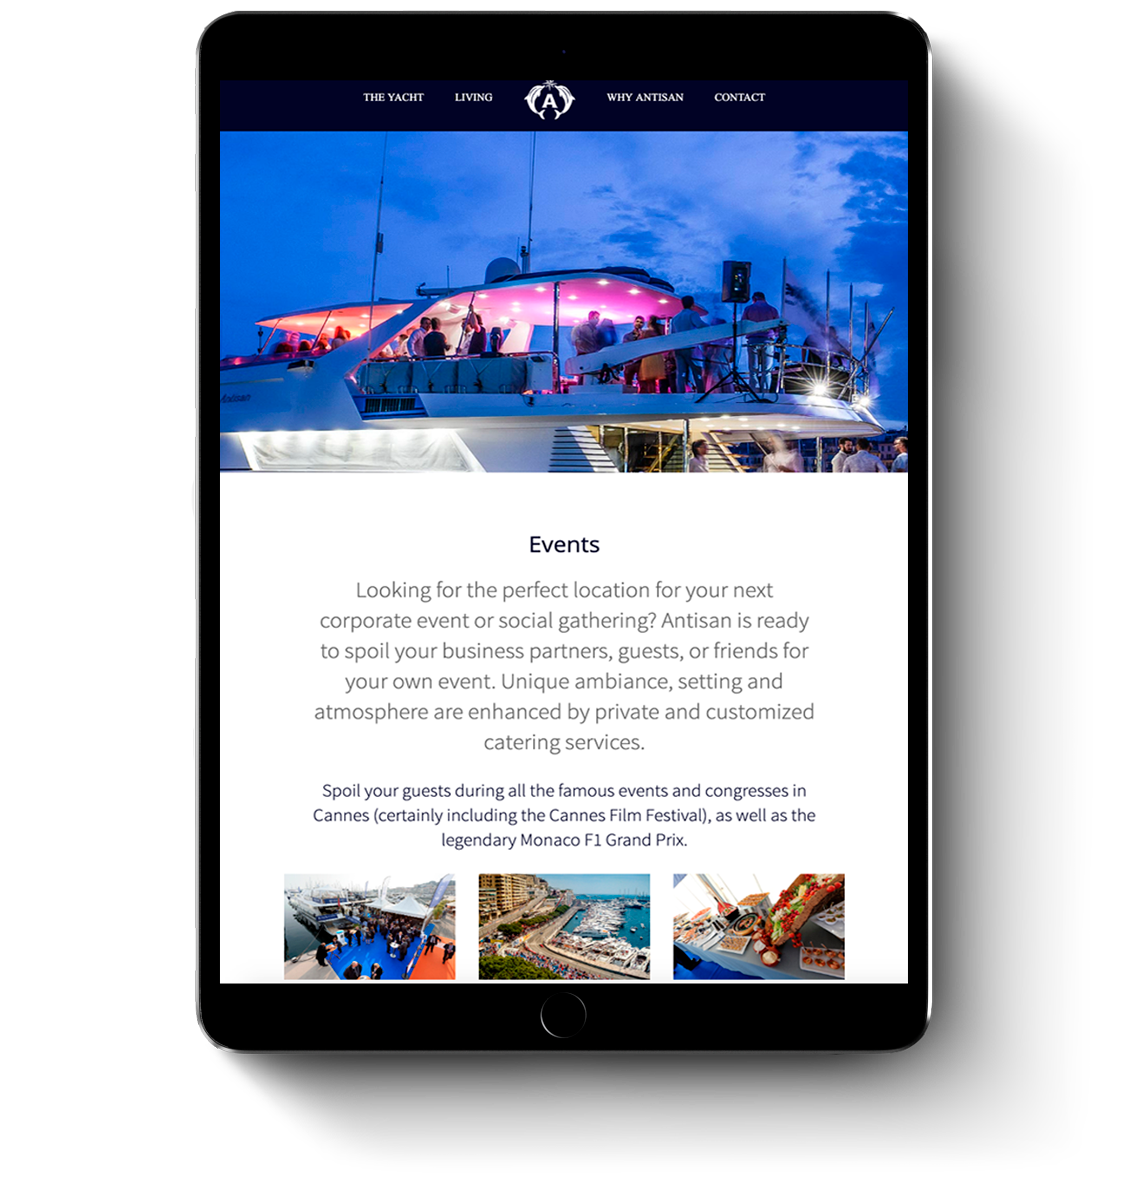 Antisan super yacht web design for mobile devices and tablets